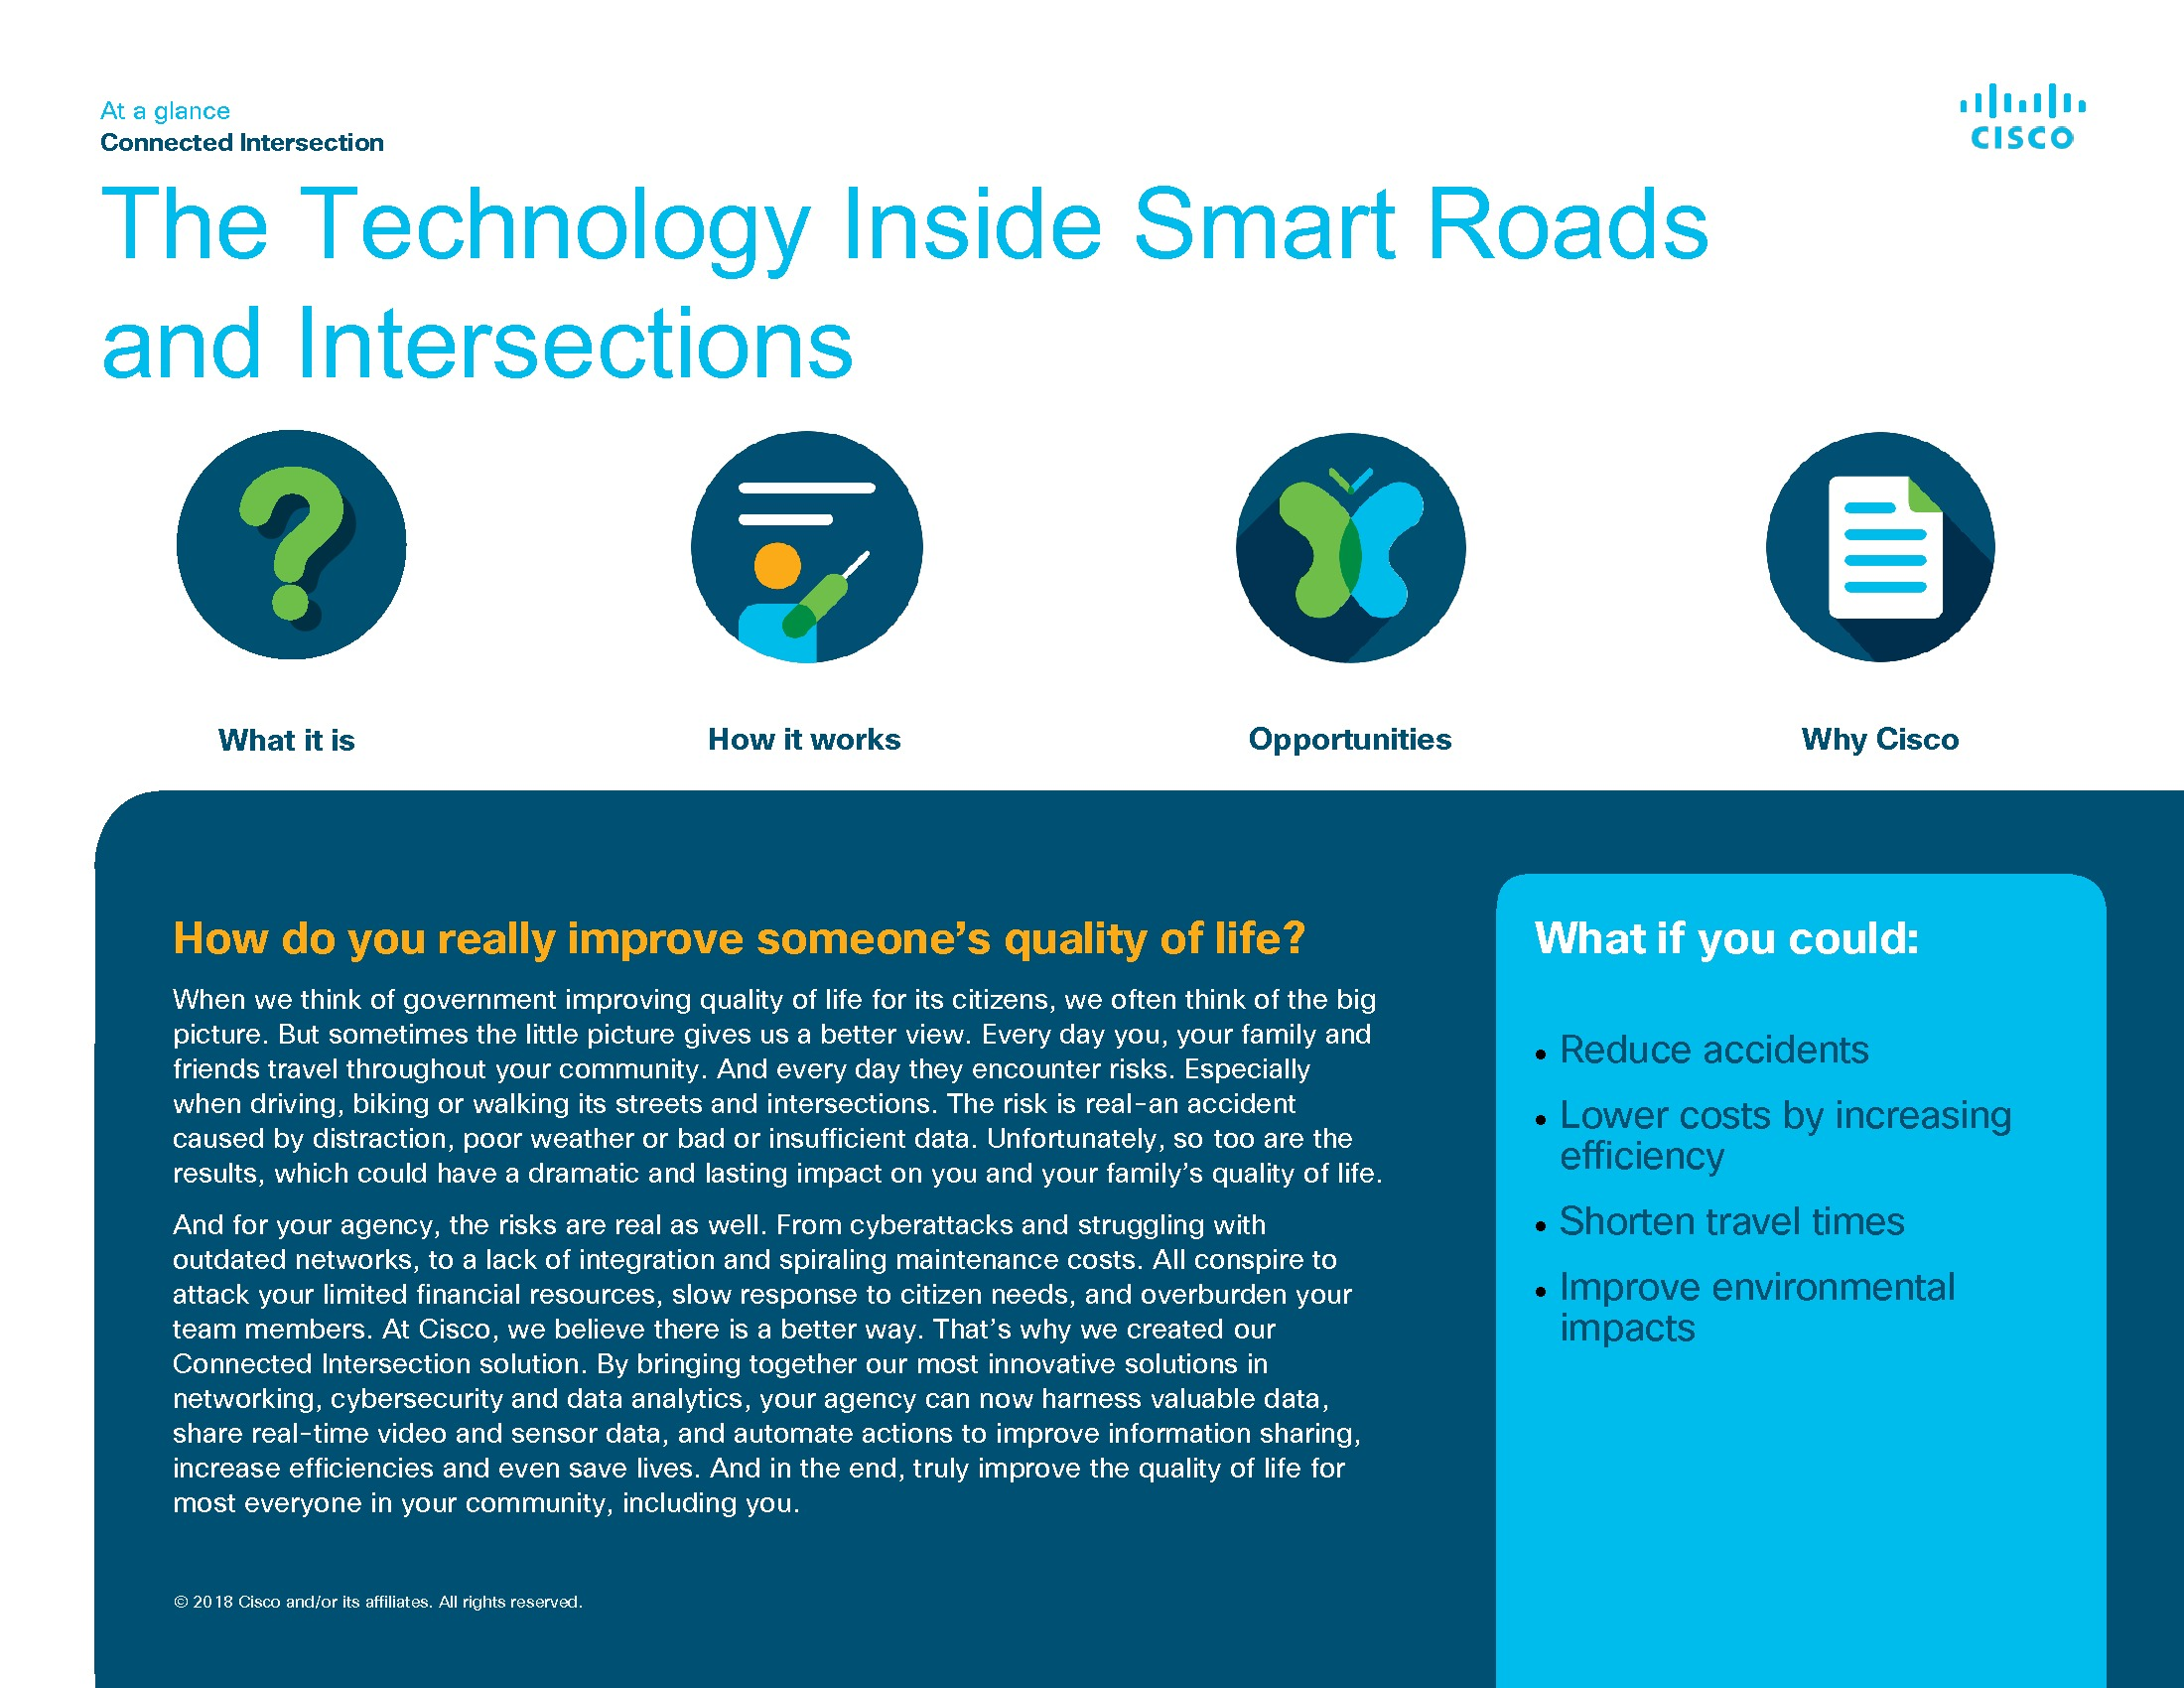 GT - Tech Data - Client Supplied - 191009 - Technology Inside Smart Roads